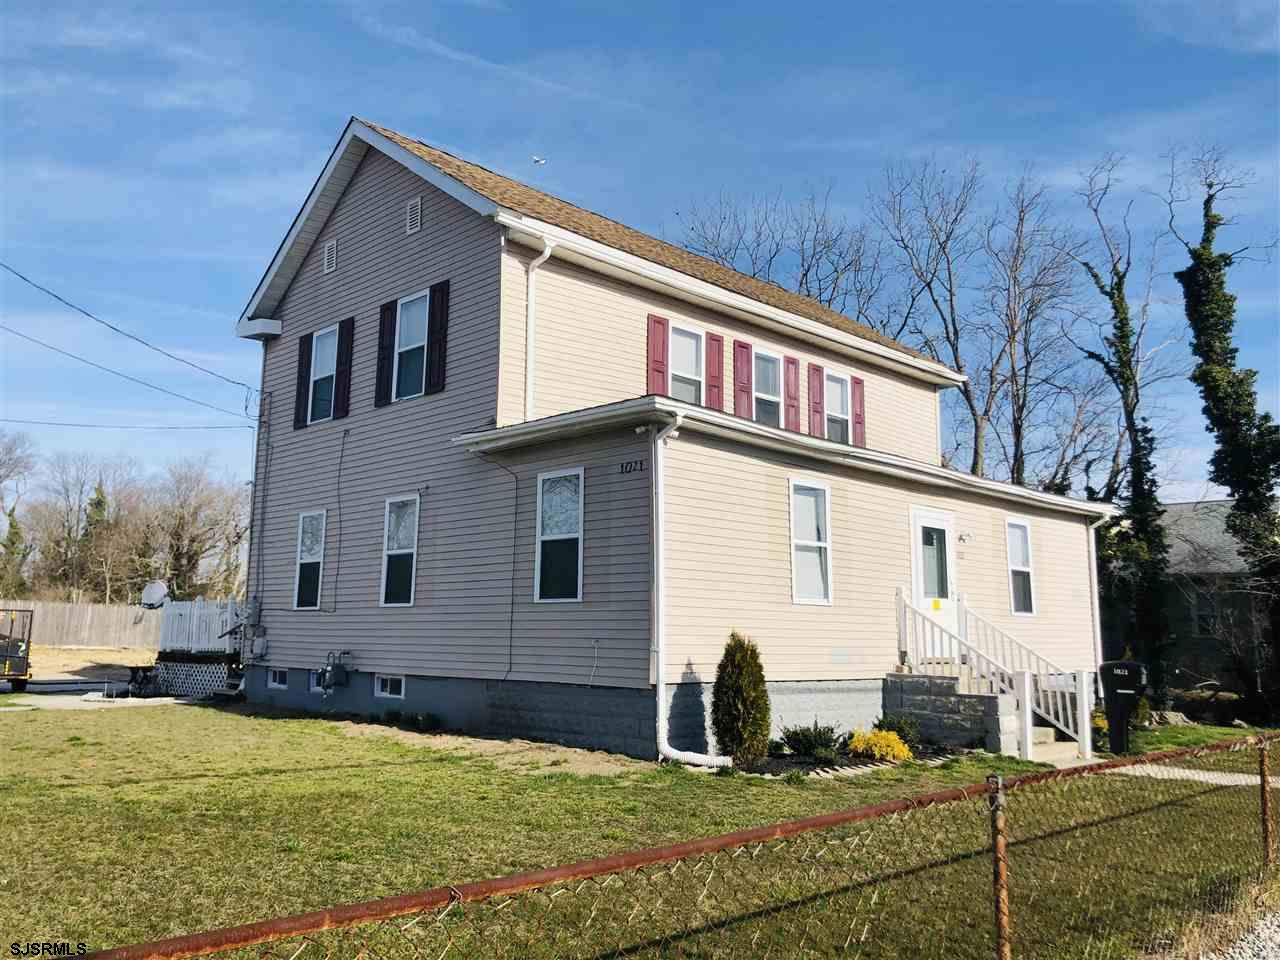 Great Investment Property or Great Home for a Large Family! This House offers 6 bedrooms, 3 bathroom